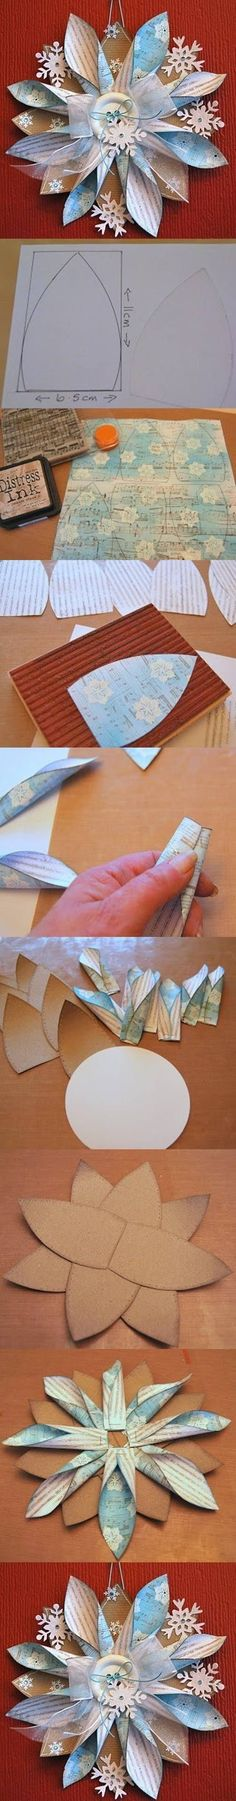 DIY Paper Ornaments Pictures, Photos, and Images for Facebook, Tumblr, Pinterest, and Twitter